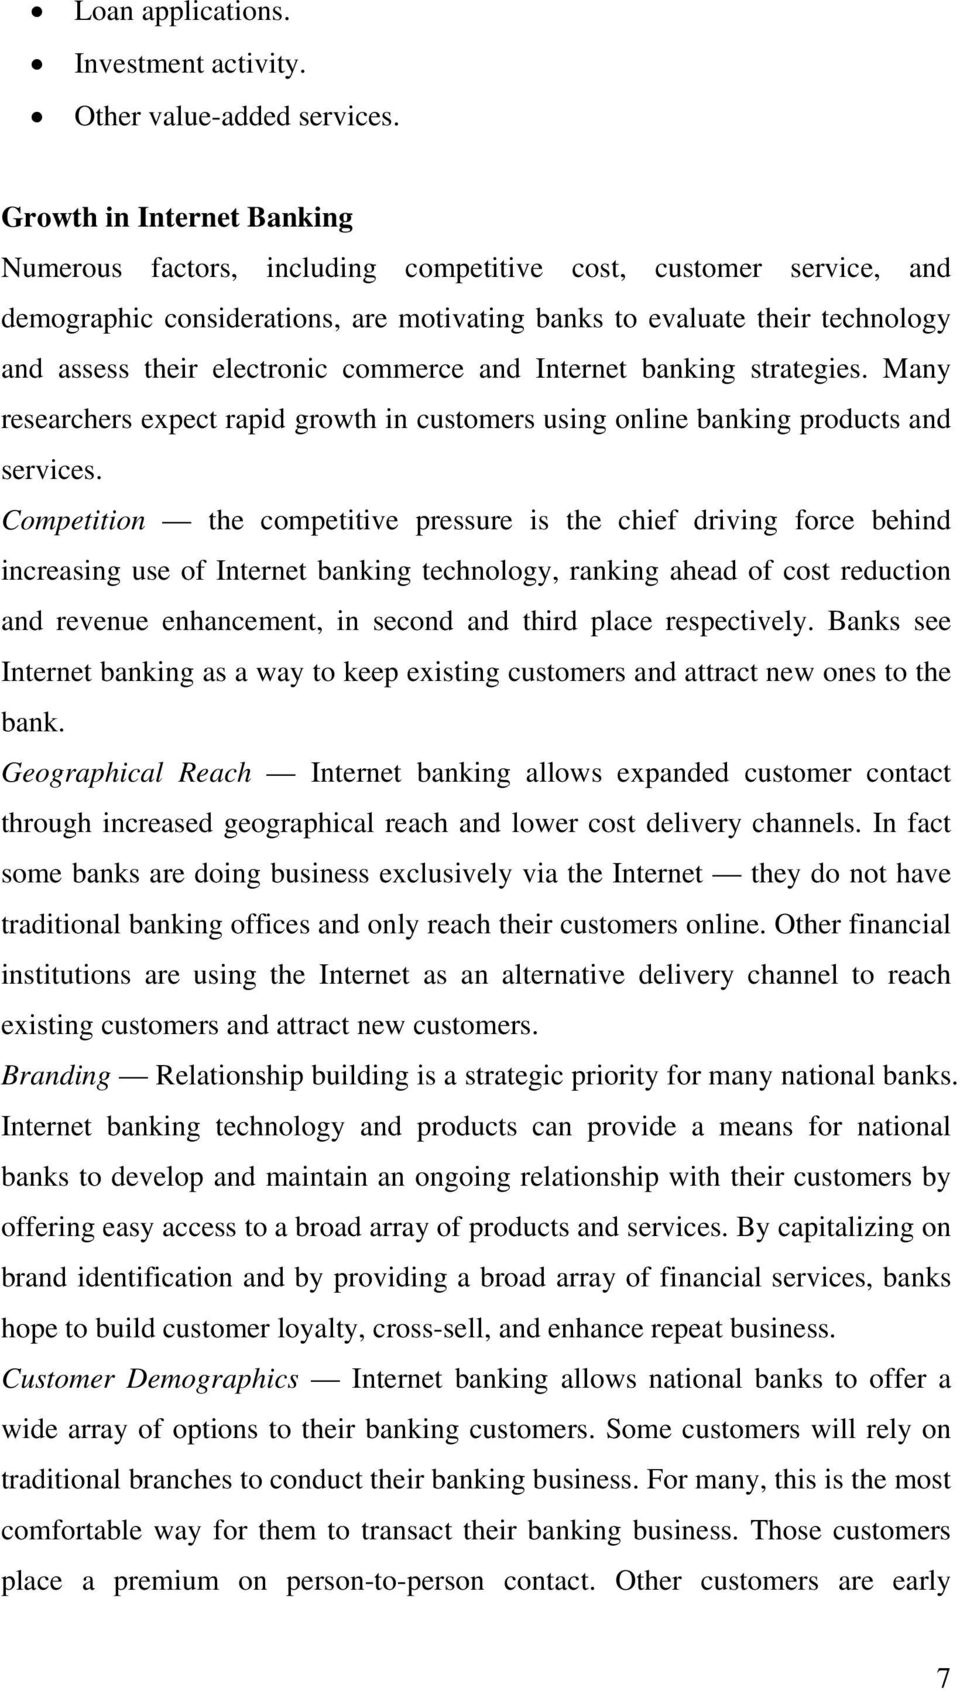 electronic commerce and Internet banking strategies. Many researchers expect rapid growth in customers using online banking products and services.